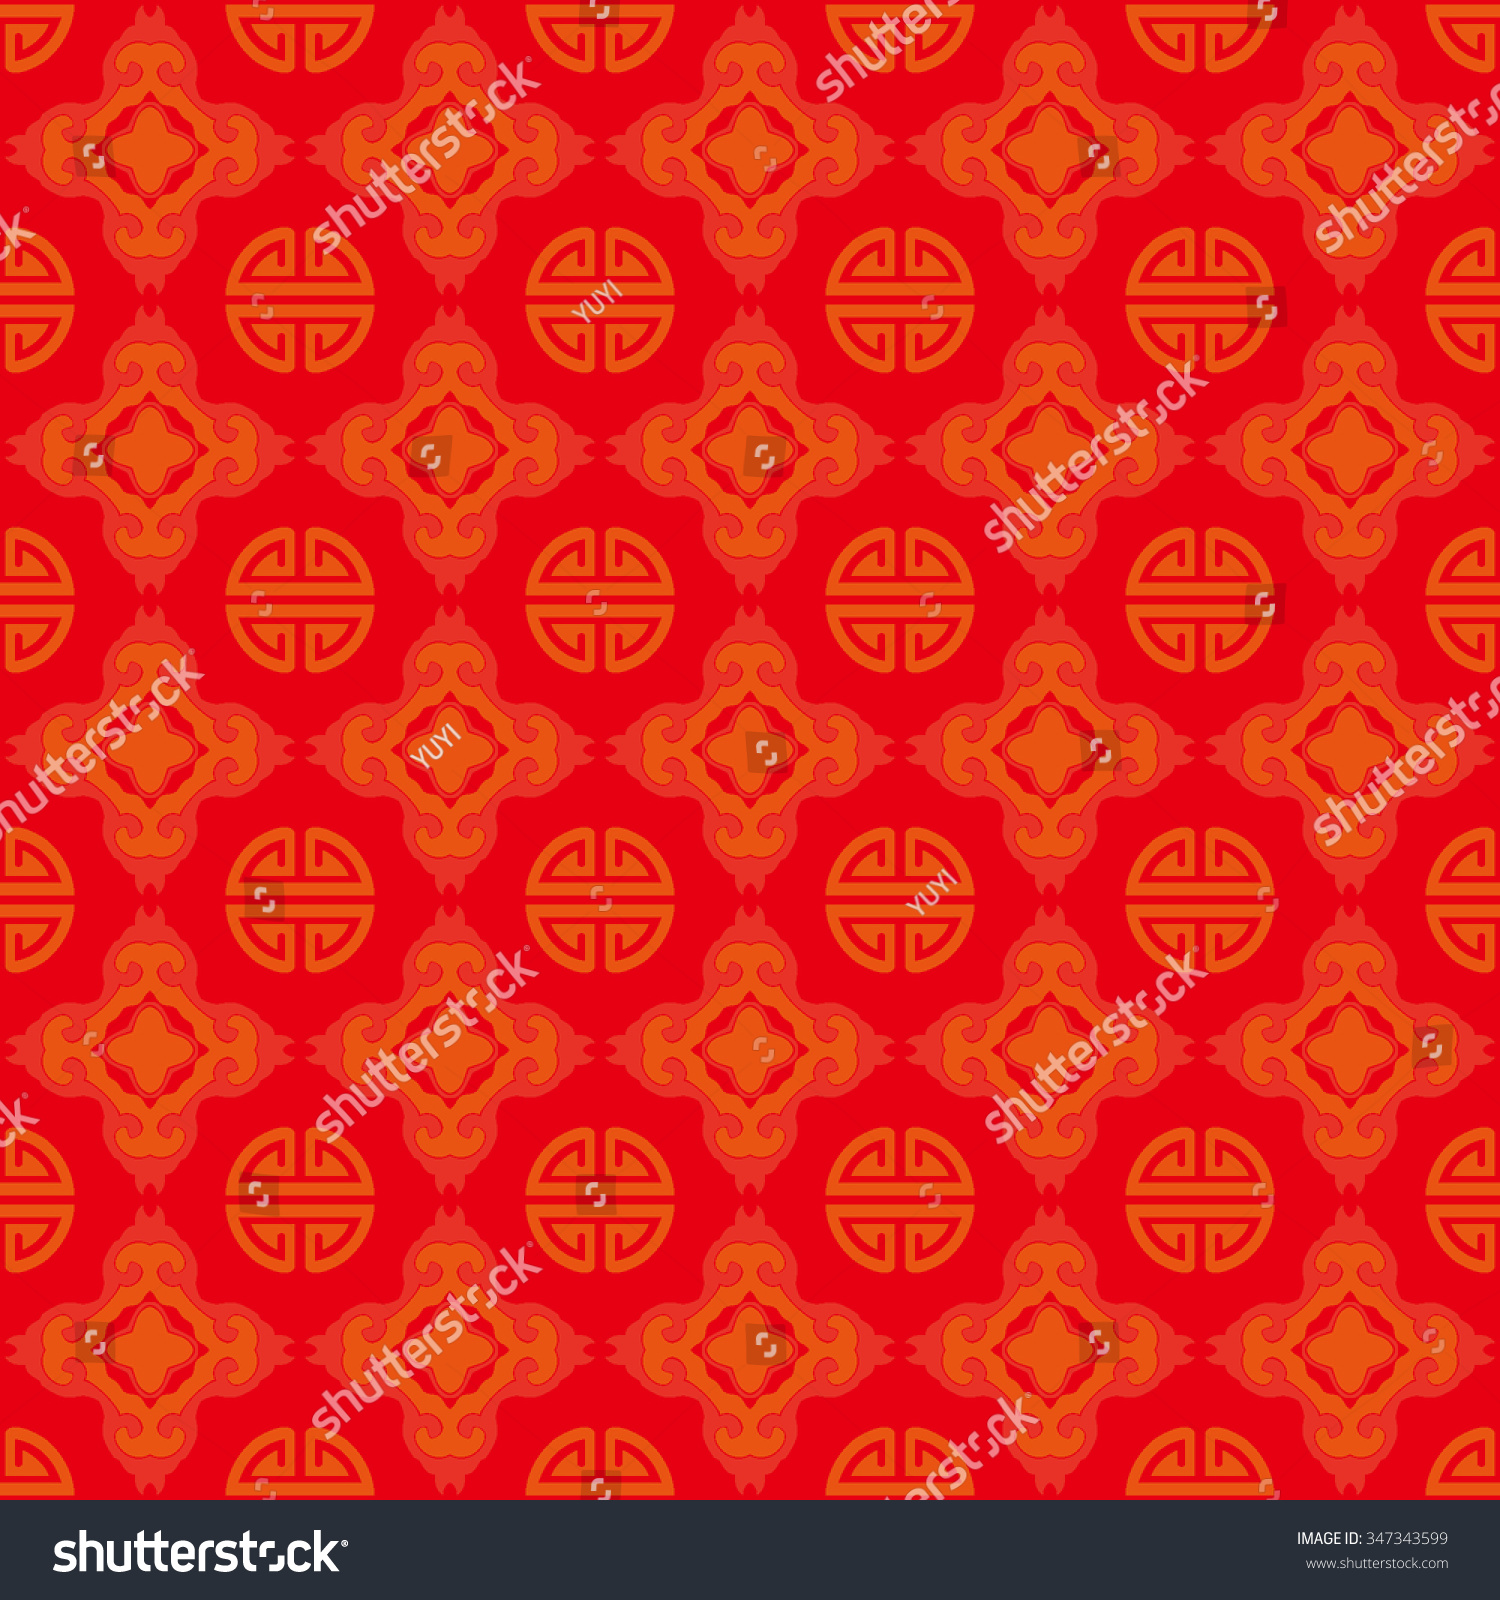 Seamless Golden Pattern Of The Vintage Chinese Symbol Shou